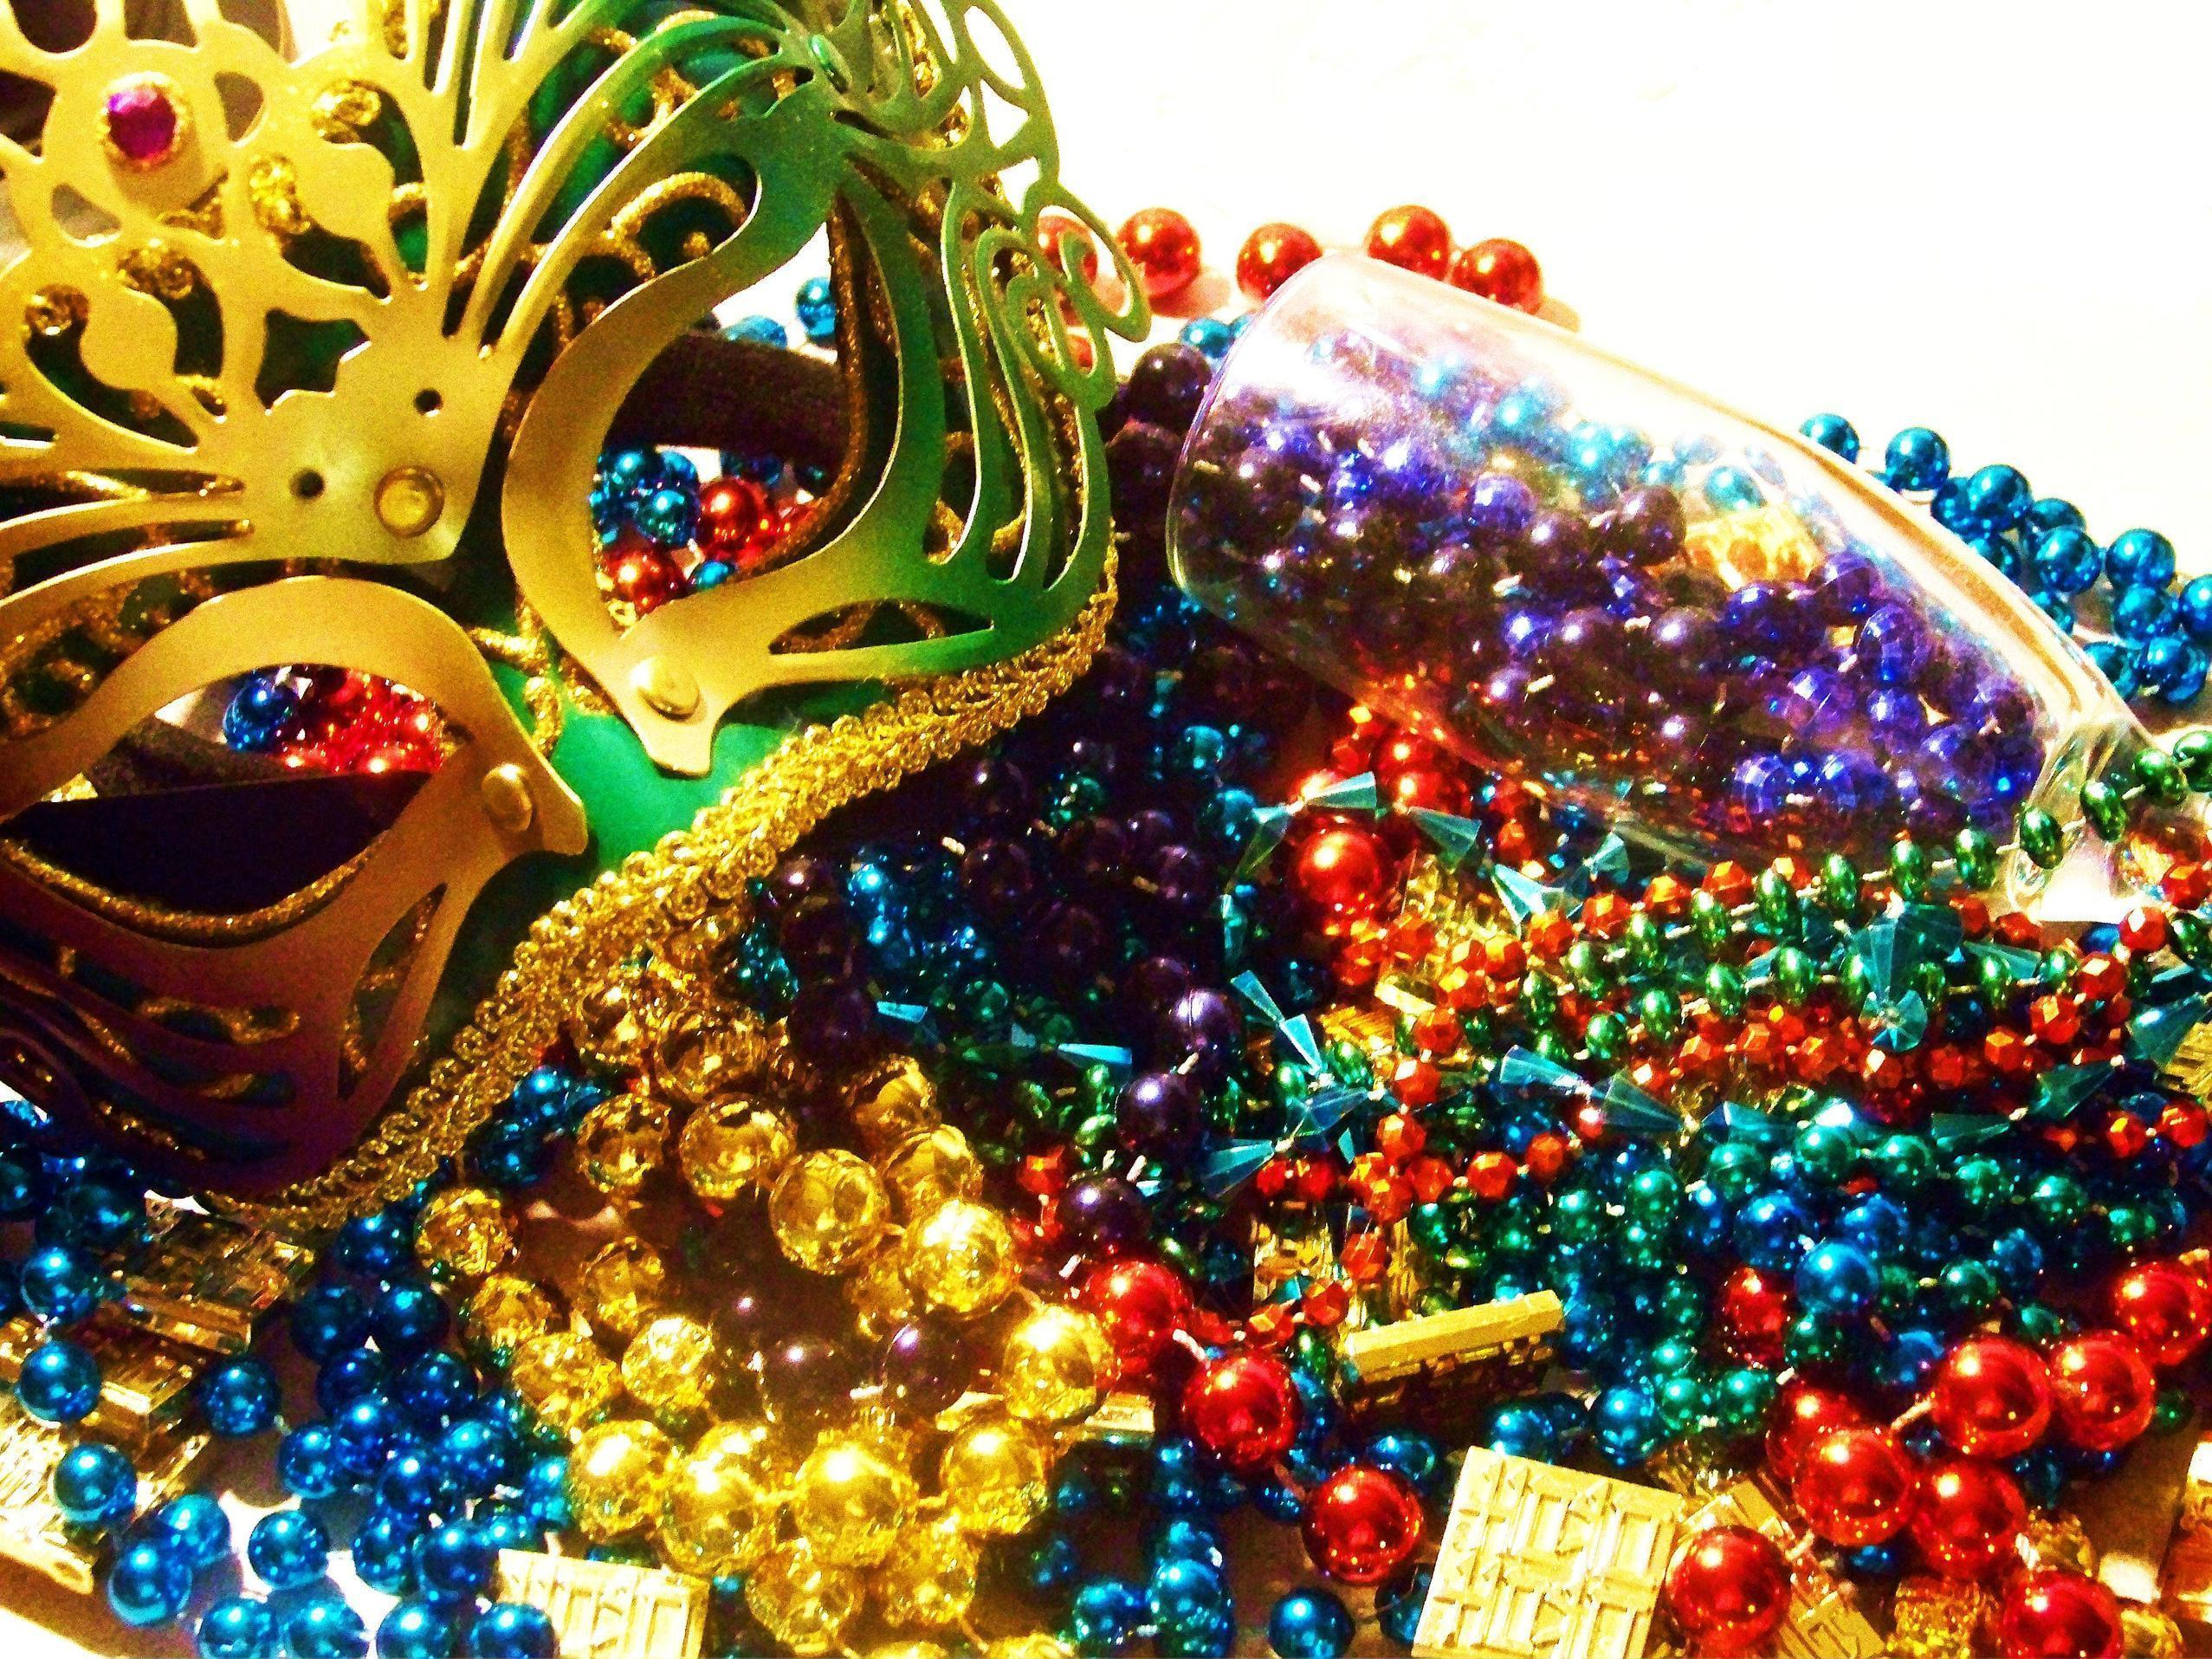 Image For > Mardi Gras Wallpapers Border